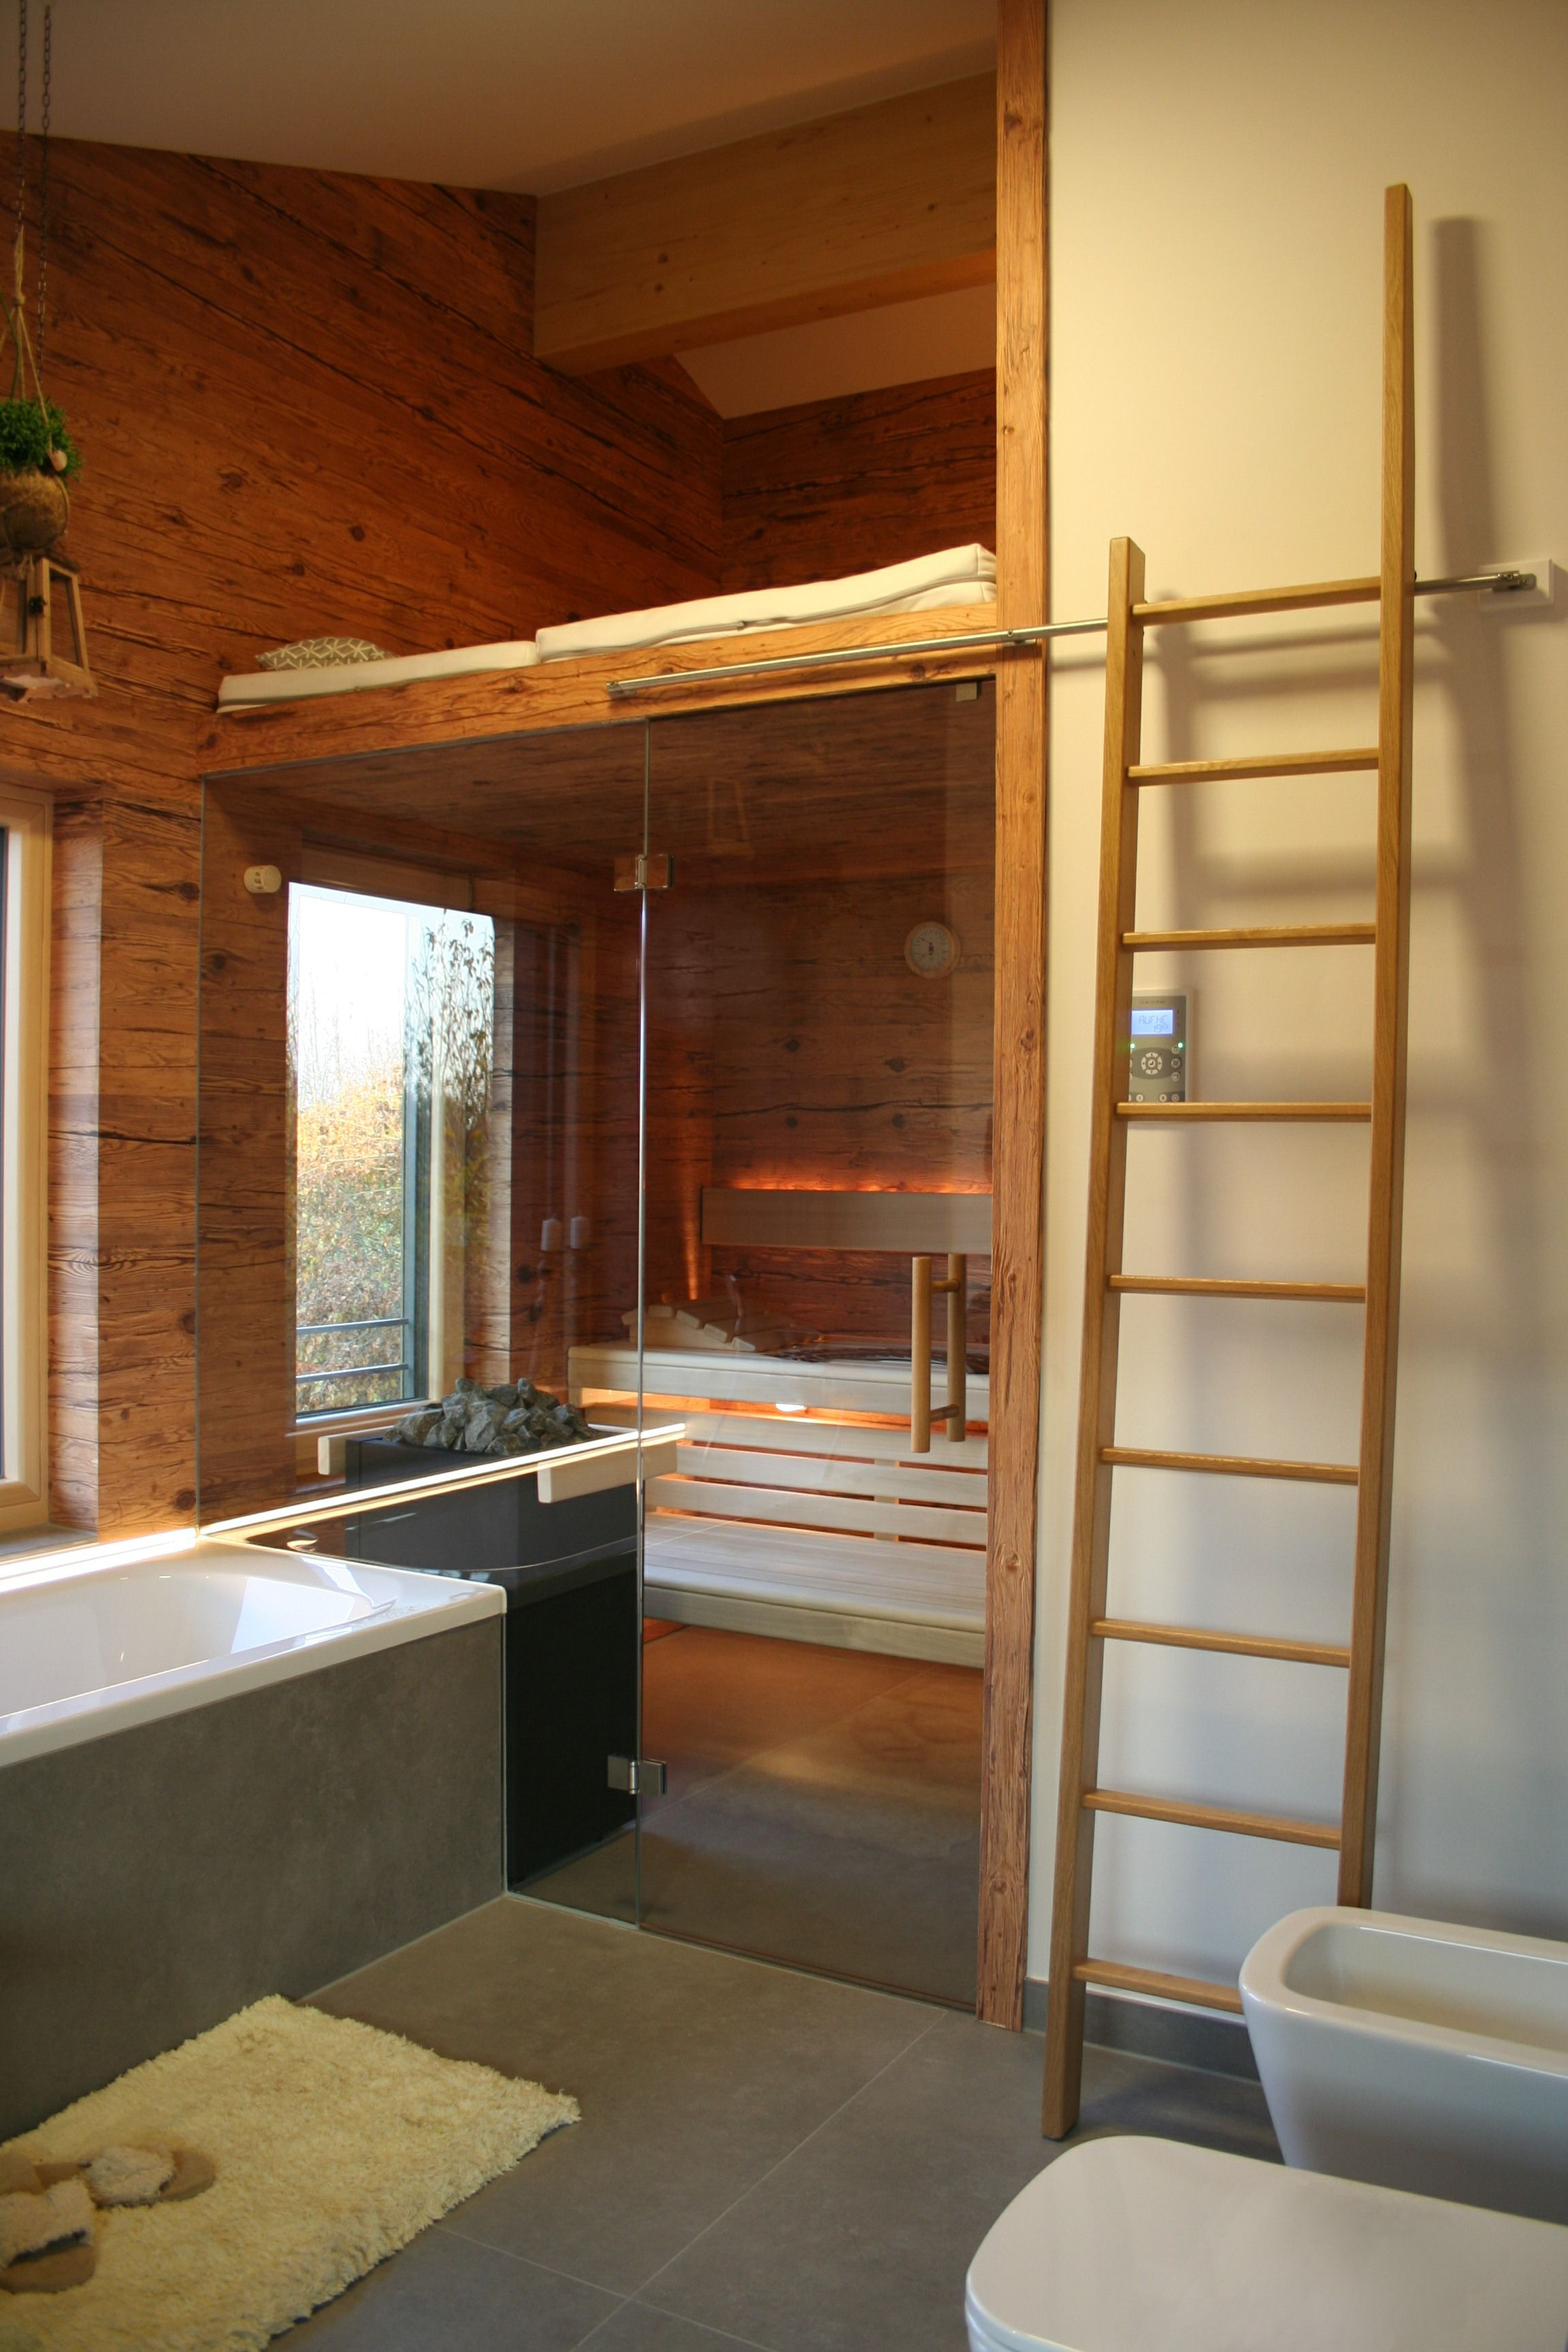 Badezimmer design draußen sauna mit altholz  badezimmer  pinterest  saunas small space